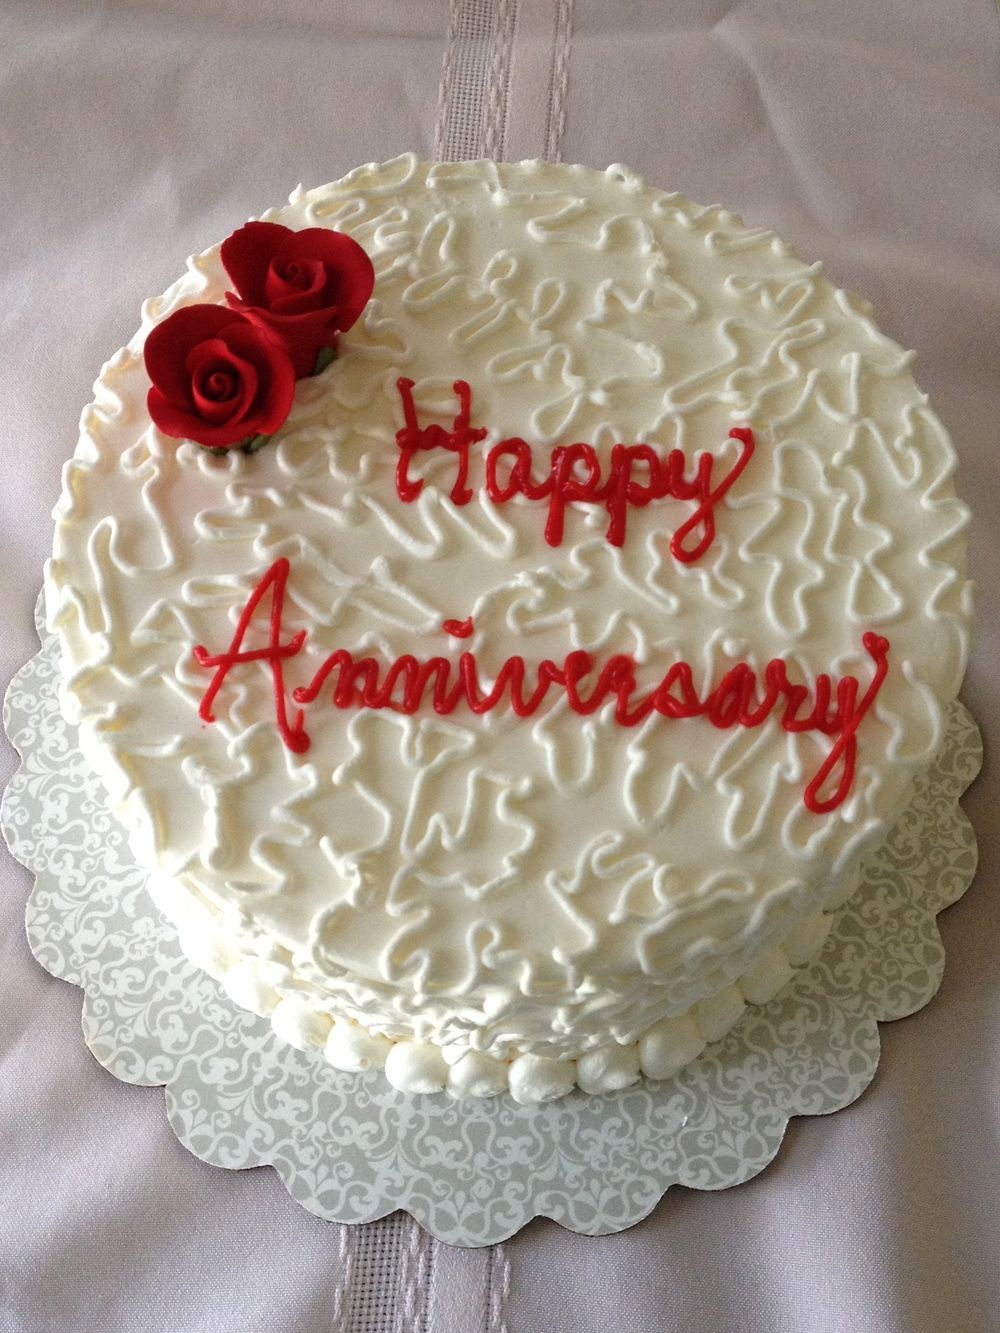 Online Anniversary cakes You Would Simply Love (With